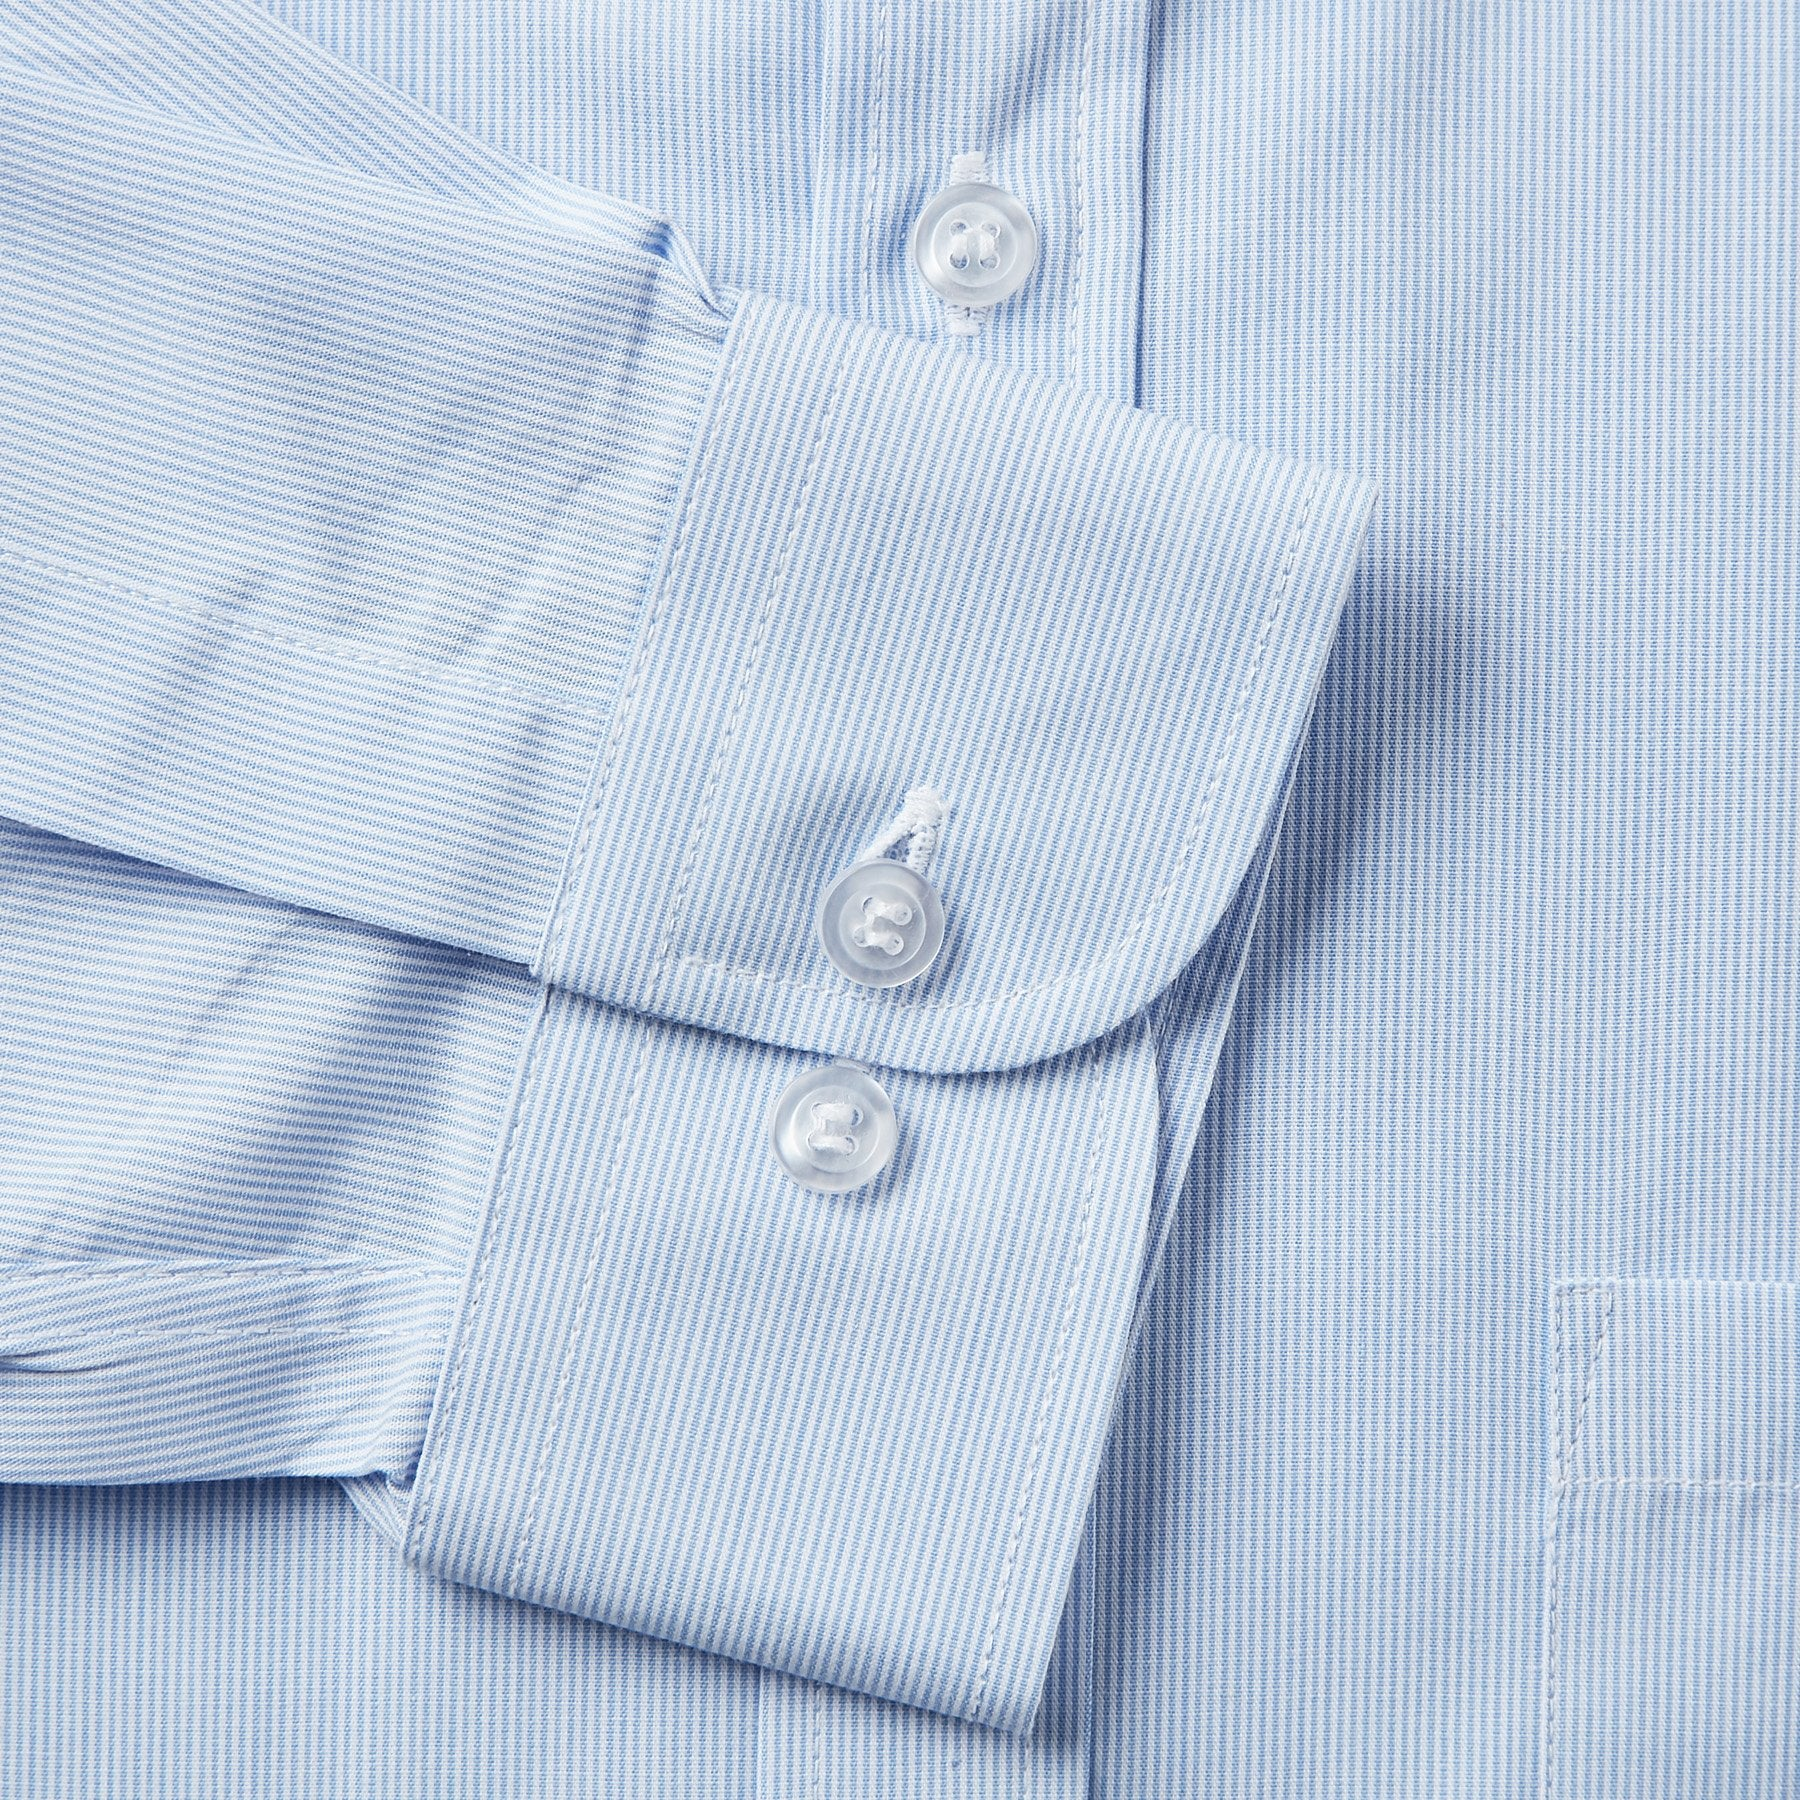 9031-Rael-Brook-Classic-Fit-Blue-Pinstripe-Single-Cuff-Shirt-3